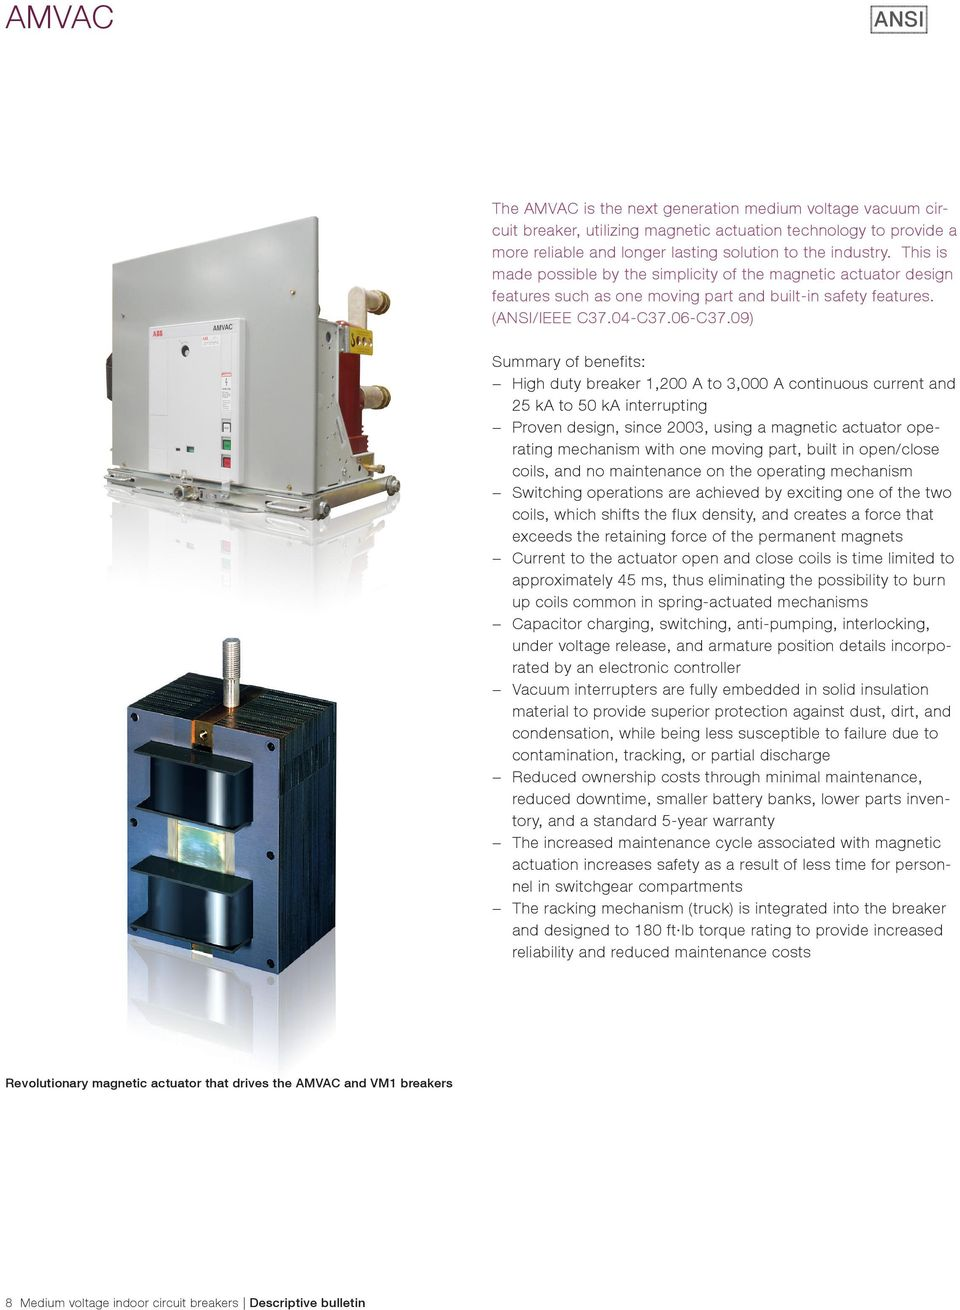 09) Summary of benefits: High duty breaker 1,200 A to 3,000 A continuous current and 25 ka to 50 ka interrupting Proven design, since 2003, using a magnetic actuator operating mechanism with one